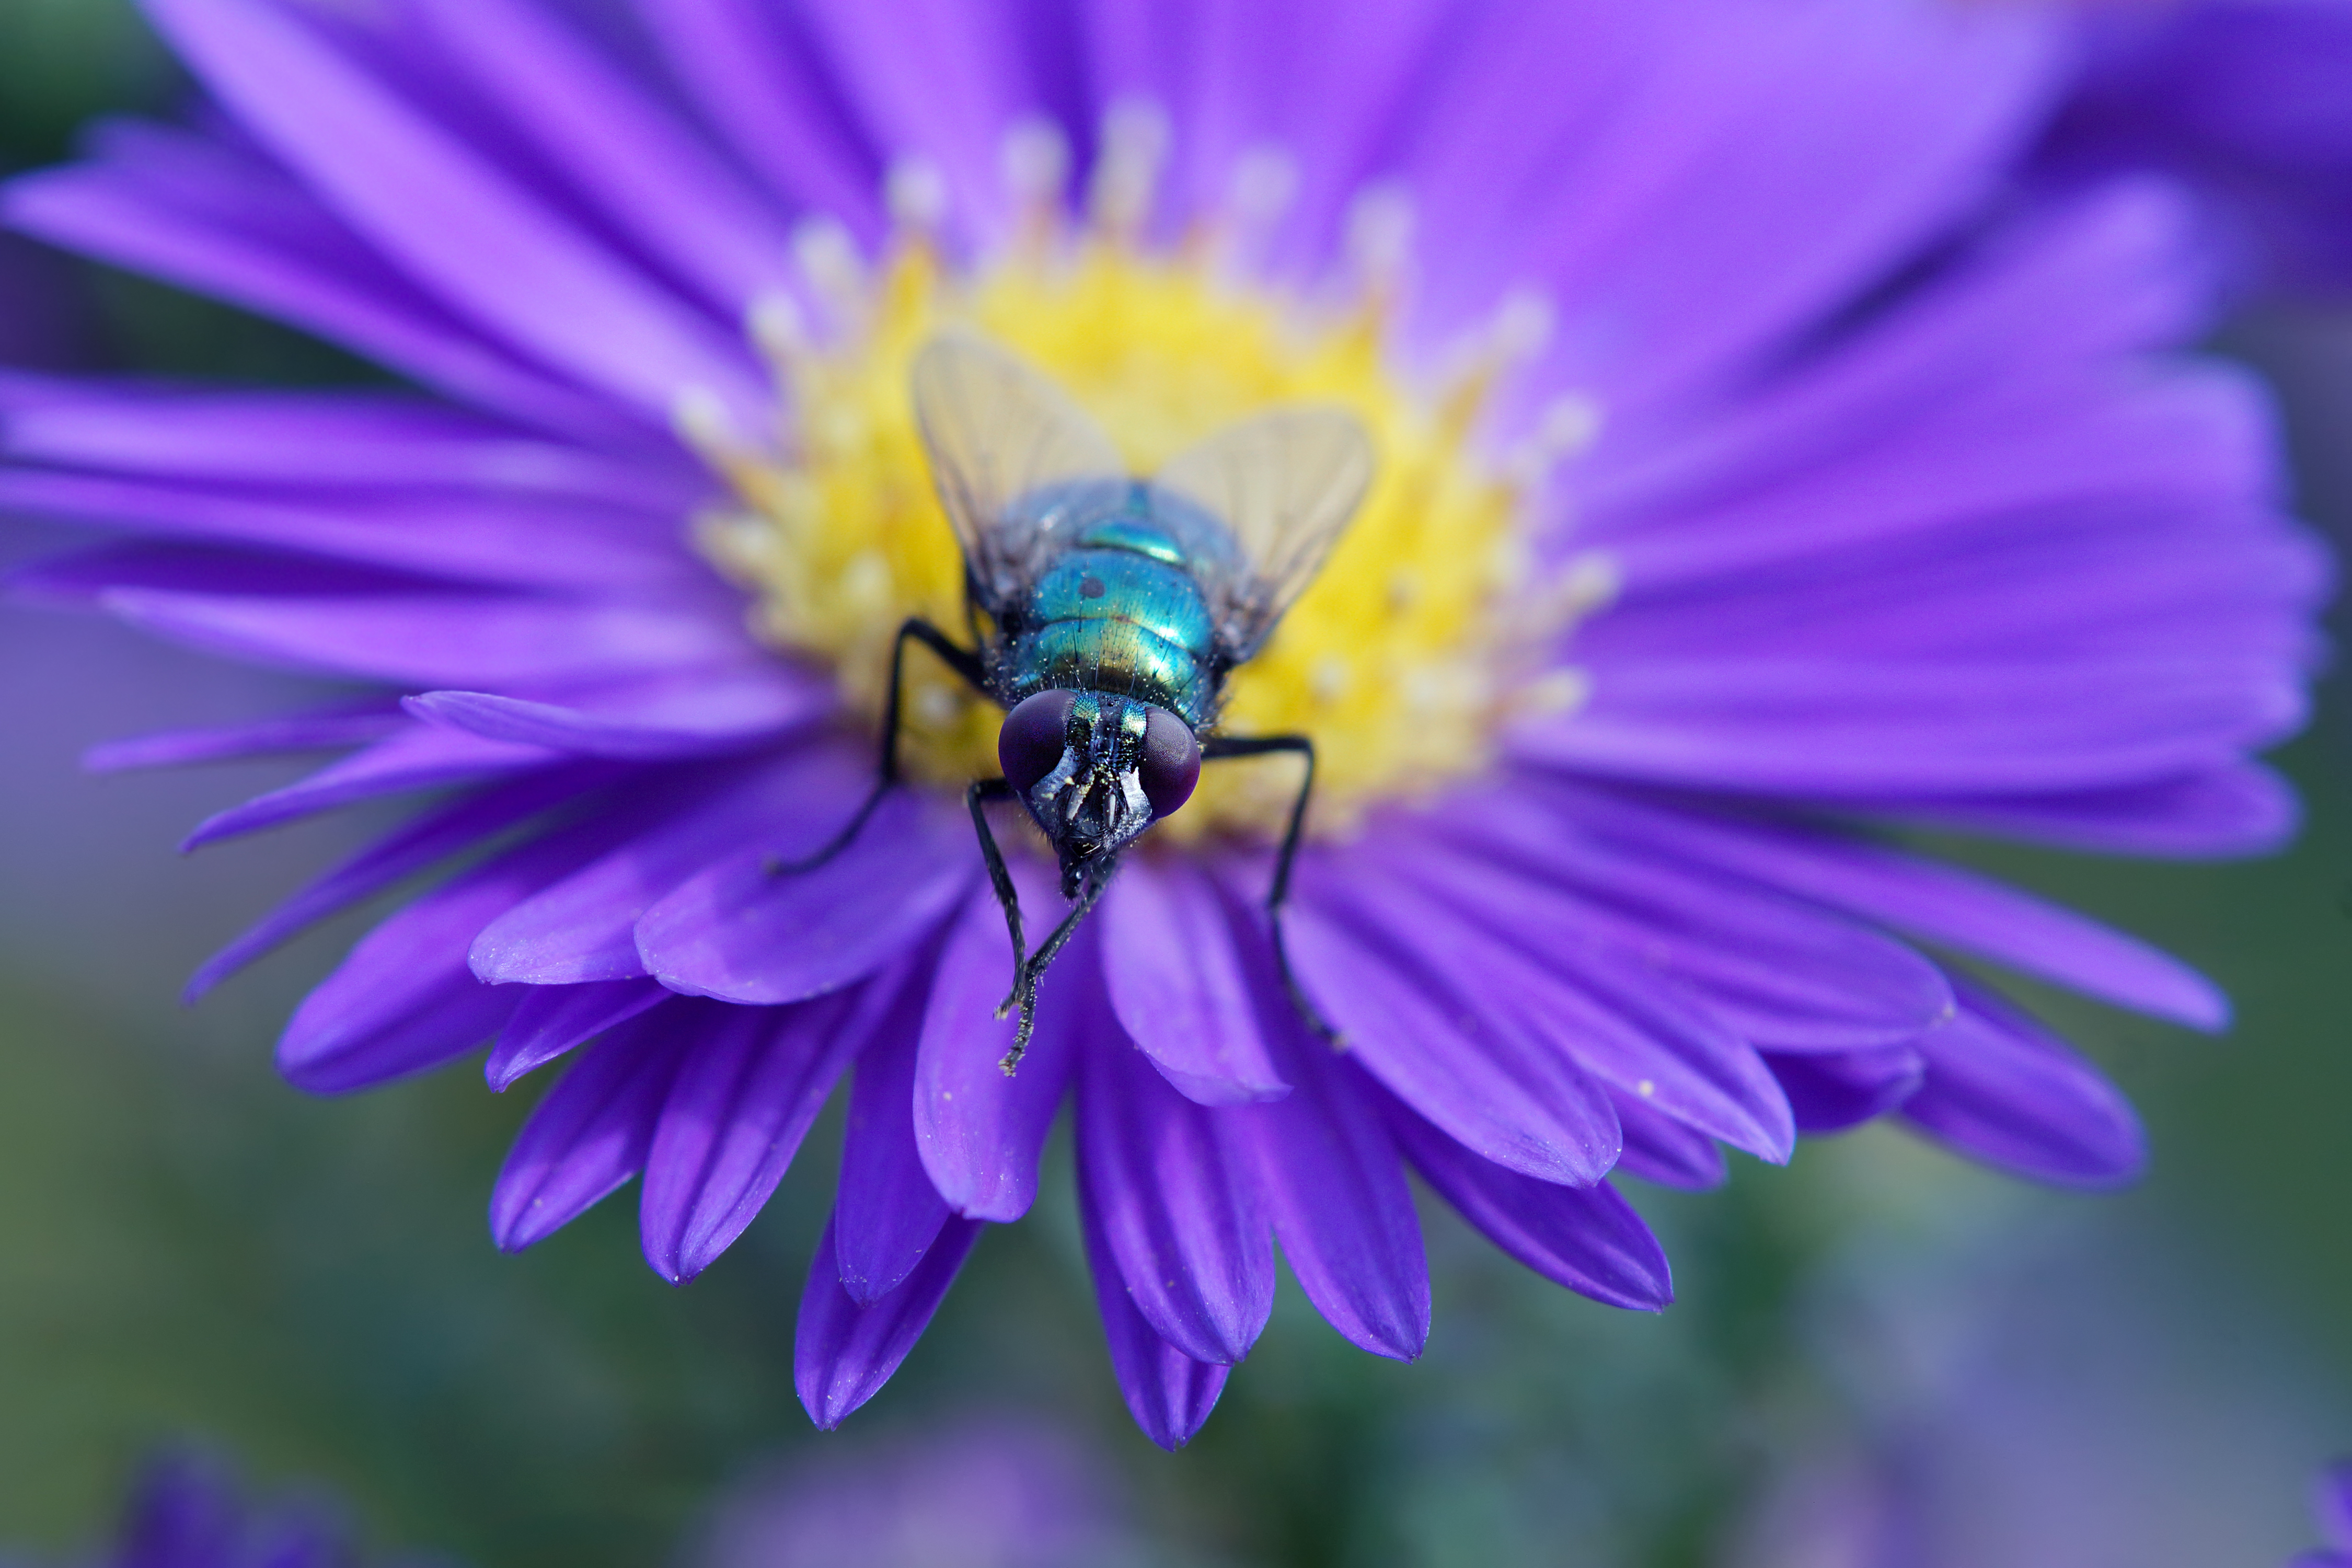 Fly on purple aster